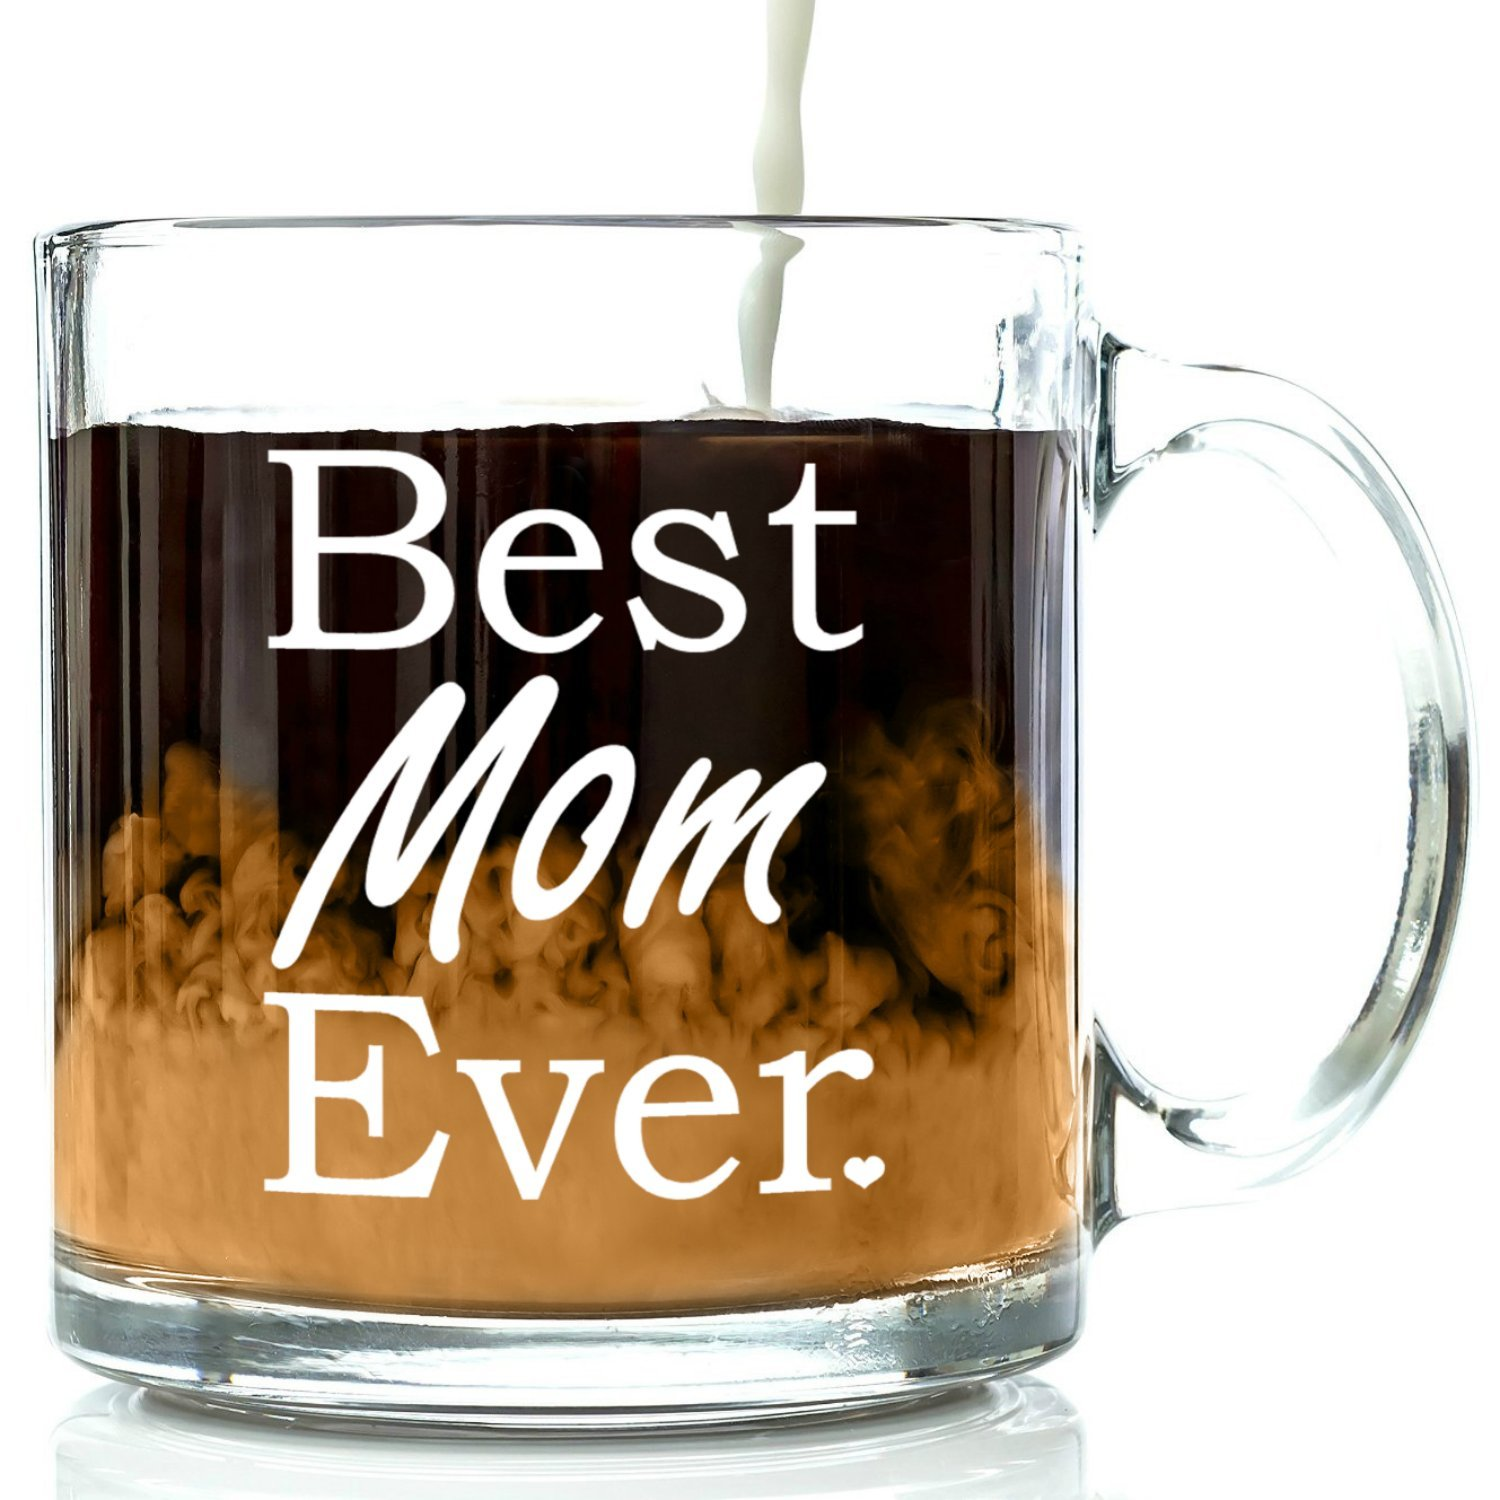 Best Mom Ever Glass Coffee Mug 13 oz – Top Mother's Day Gifts – Unique Novelty Birthday Gift From Kids, Son or Daughter – Perfect New Present Idea For a Mother, Wife, Sister, Grandma or In-law